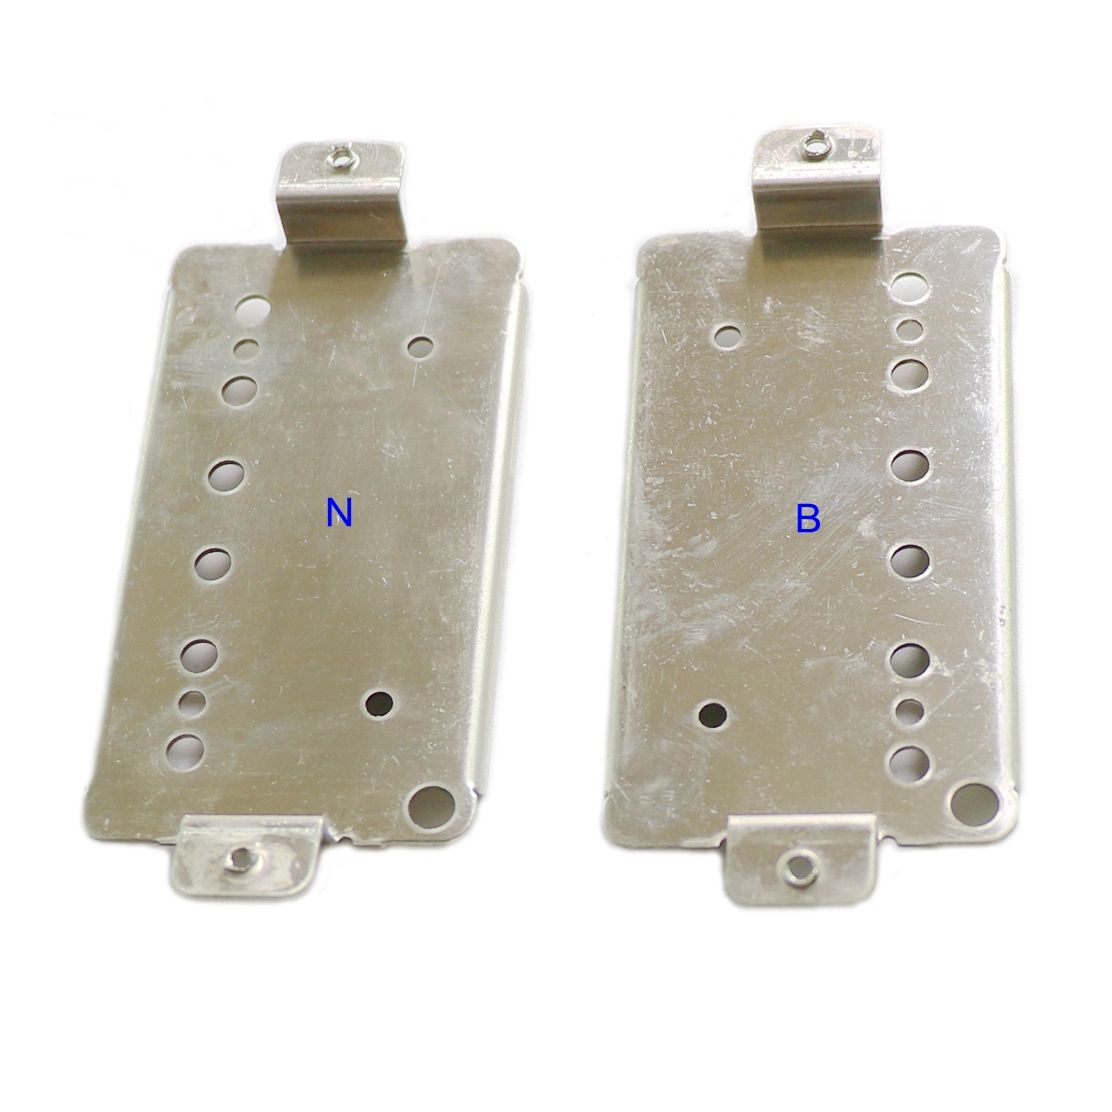 Nickel Silver 3/48 US standard humbucker guitar pickup baseplate with 50/52mm string spacing for wholesale